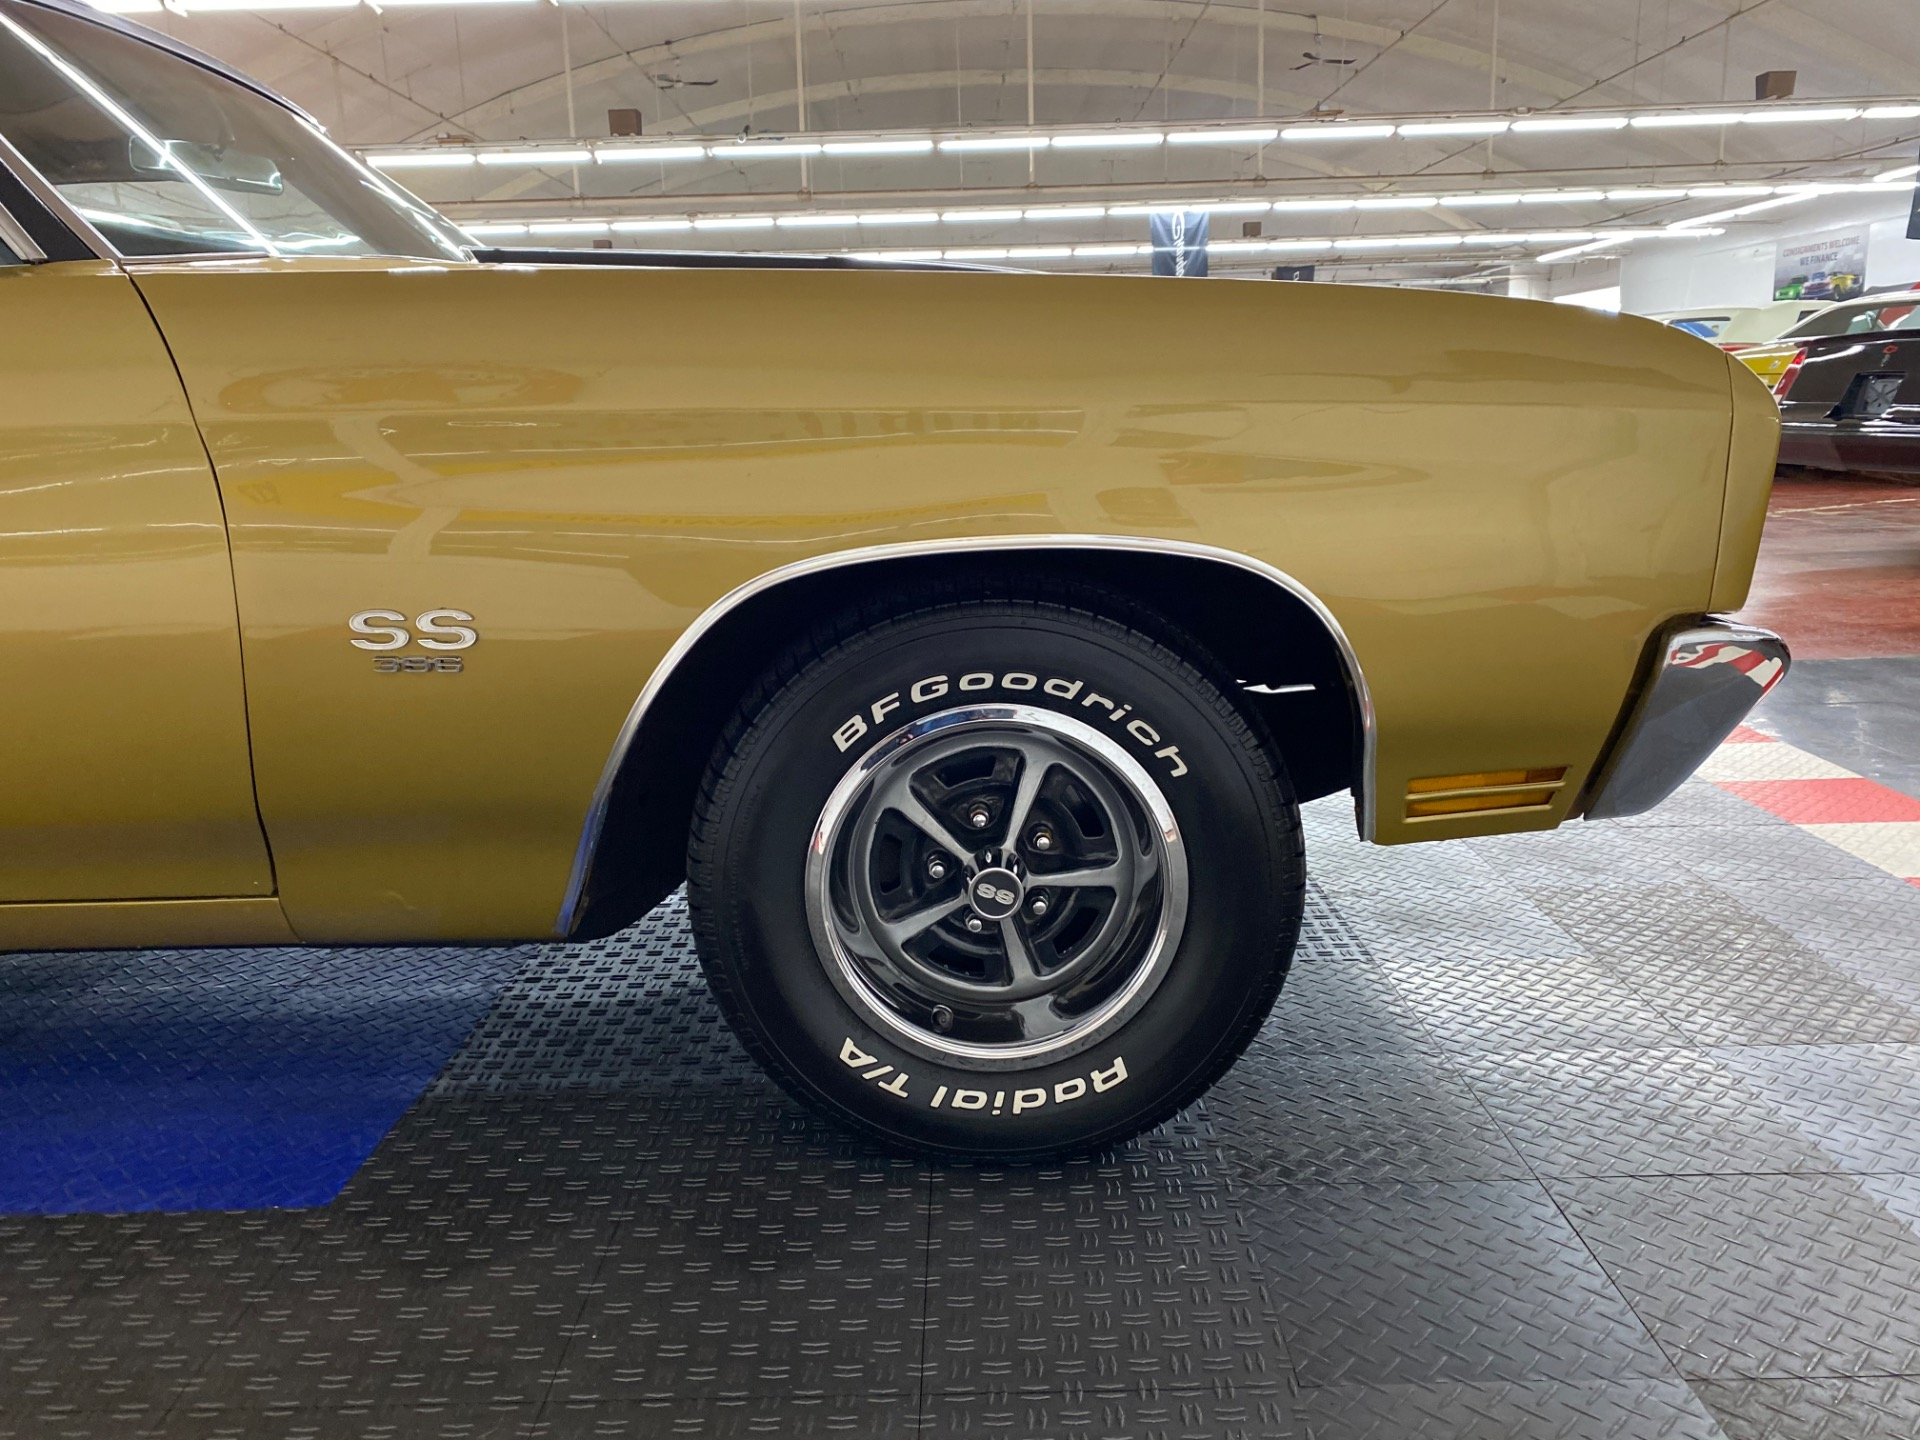 Used 1970 Chevrolet Chevelle -SUPER SPORT - L34 396 - FACTORY A/C - BUILD SHEET - SEE VIDEO | Mundelein, IL